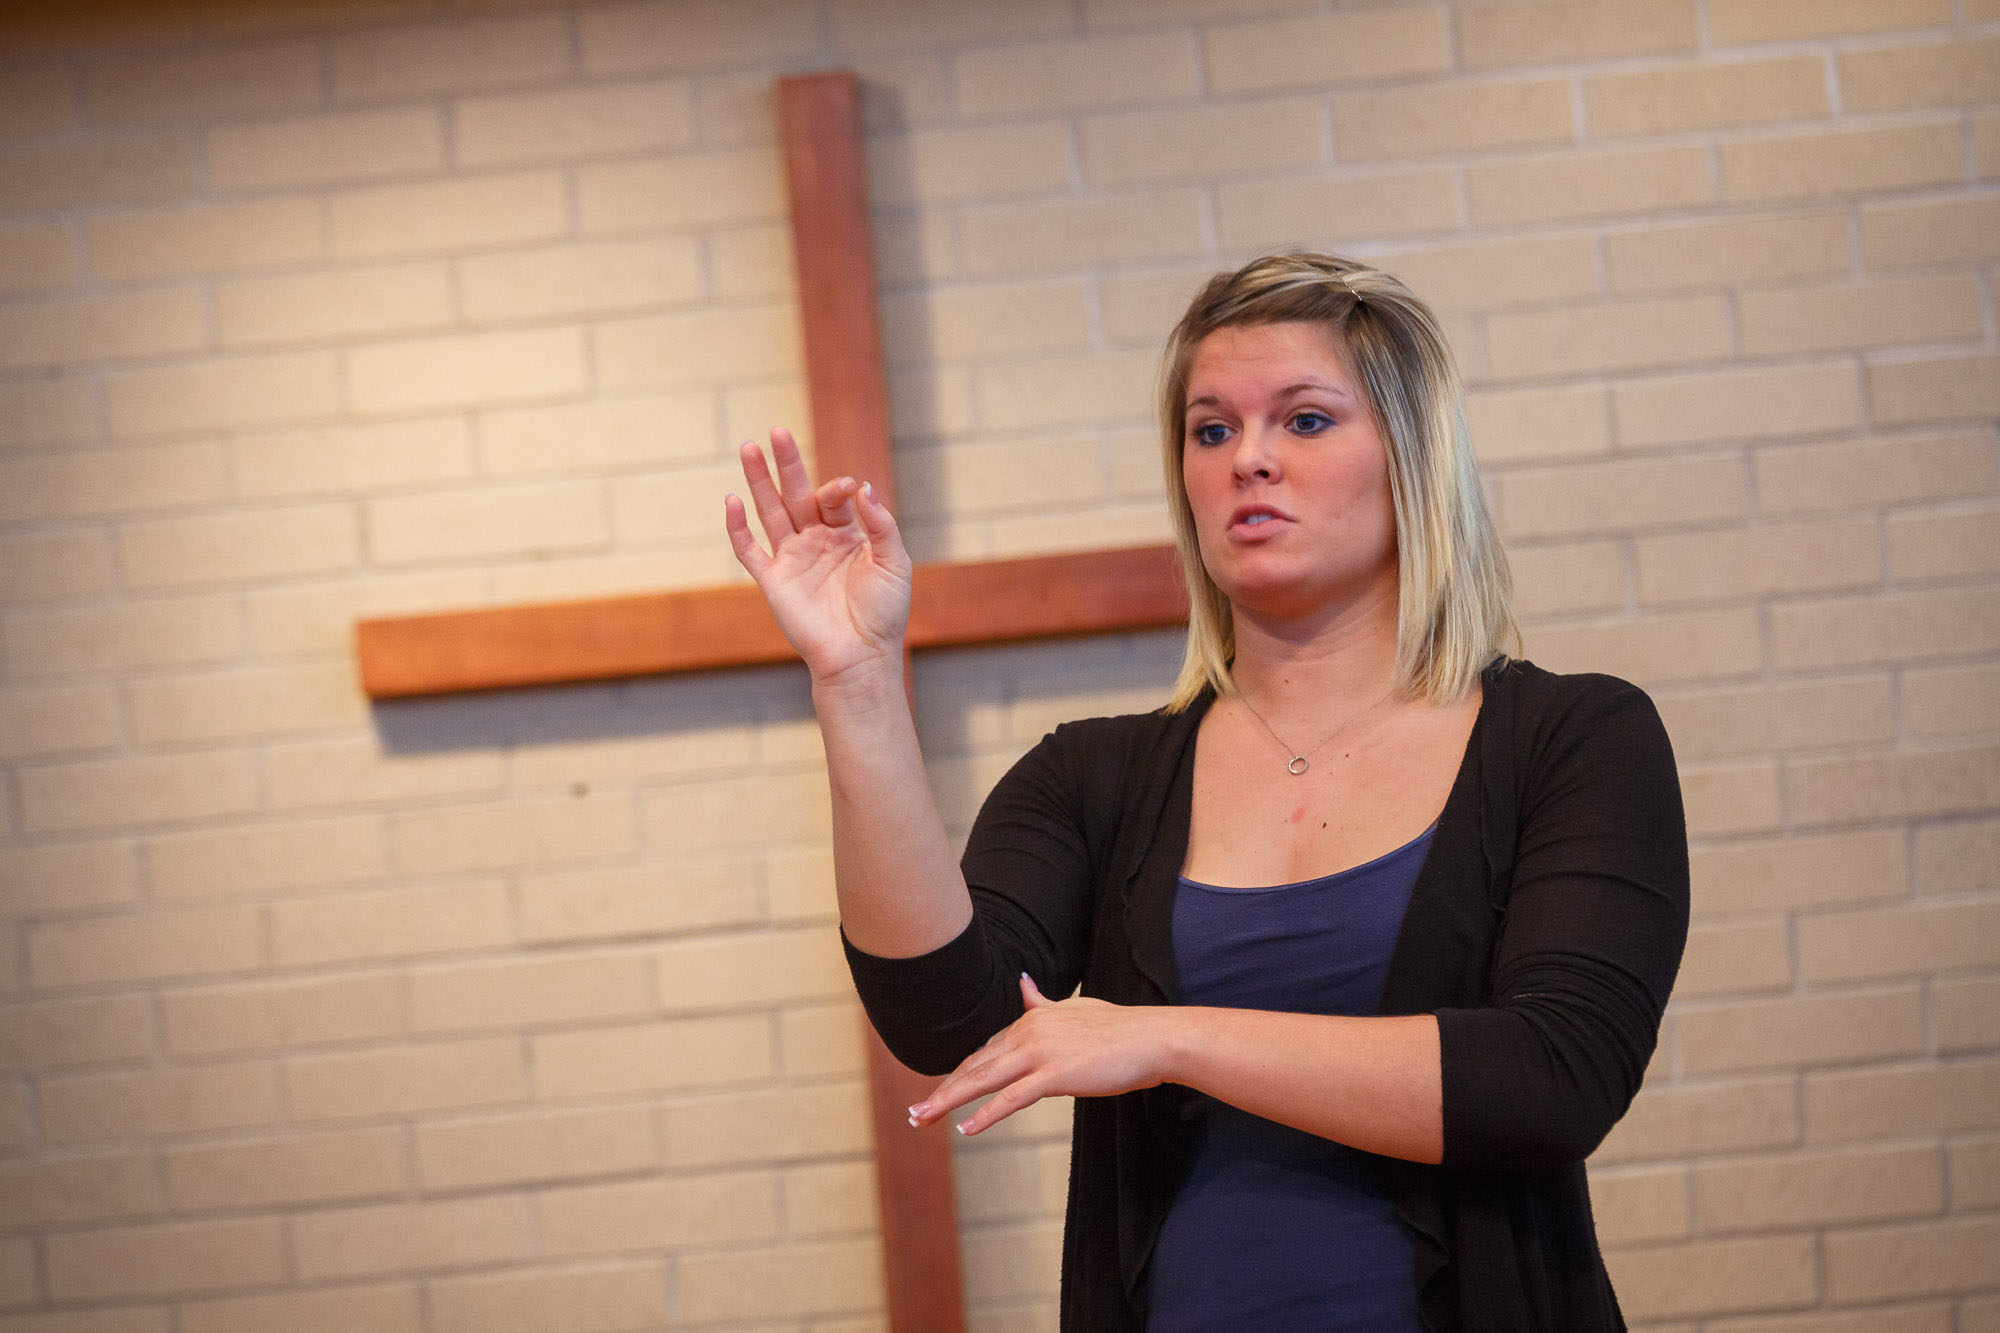 An ASL student interprets in the Church-Chapel, a large wooden cross in the background